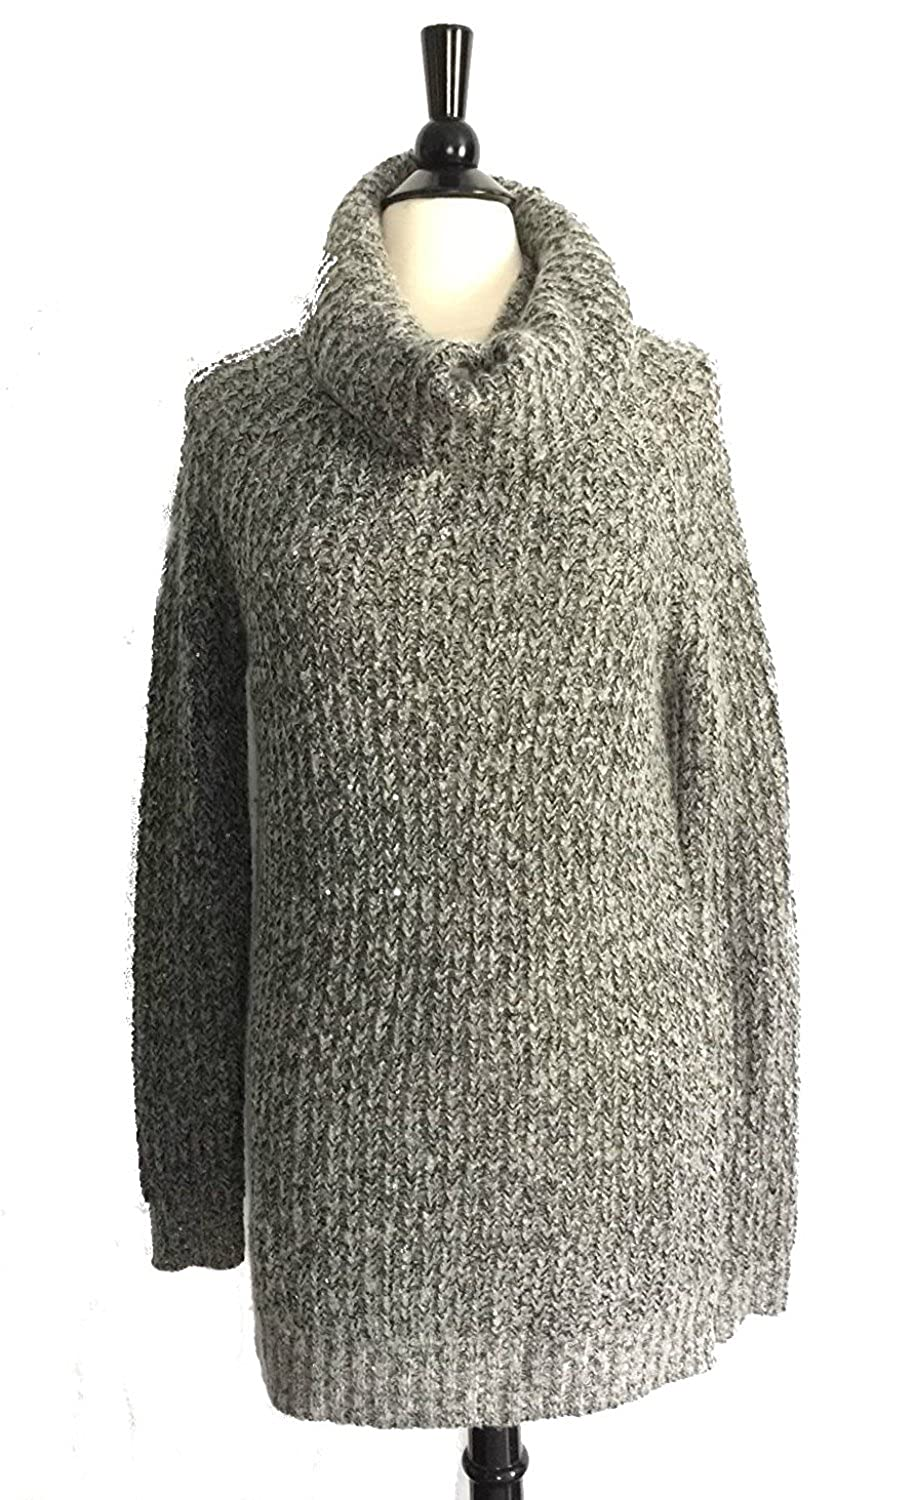 Mossimo Cowl Neck Tunic Sweater Gray Marled Yarn Sequin Embellished